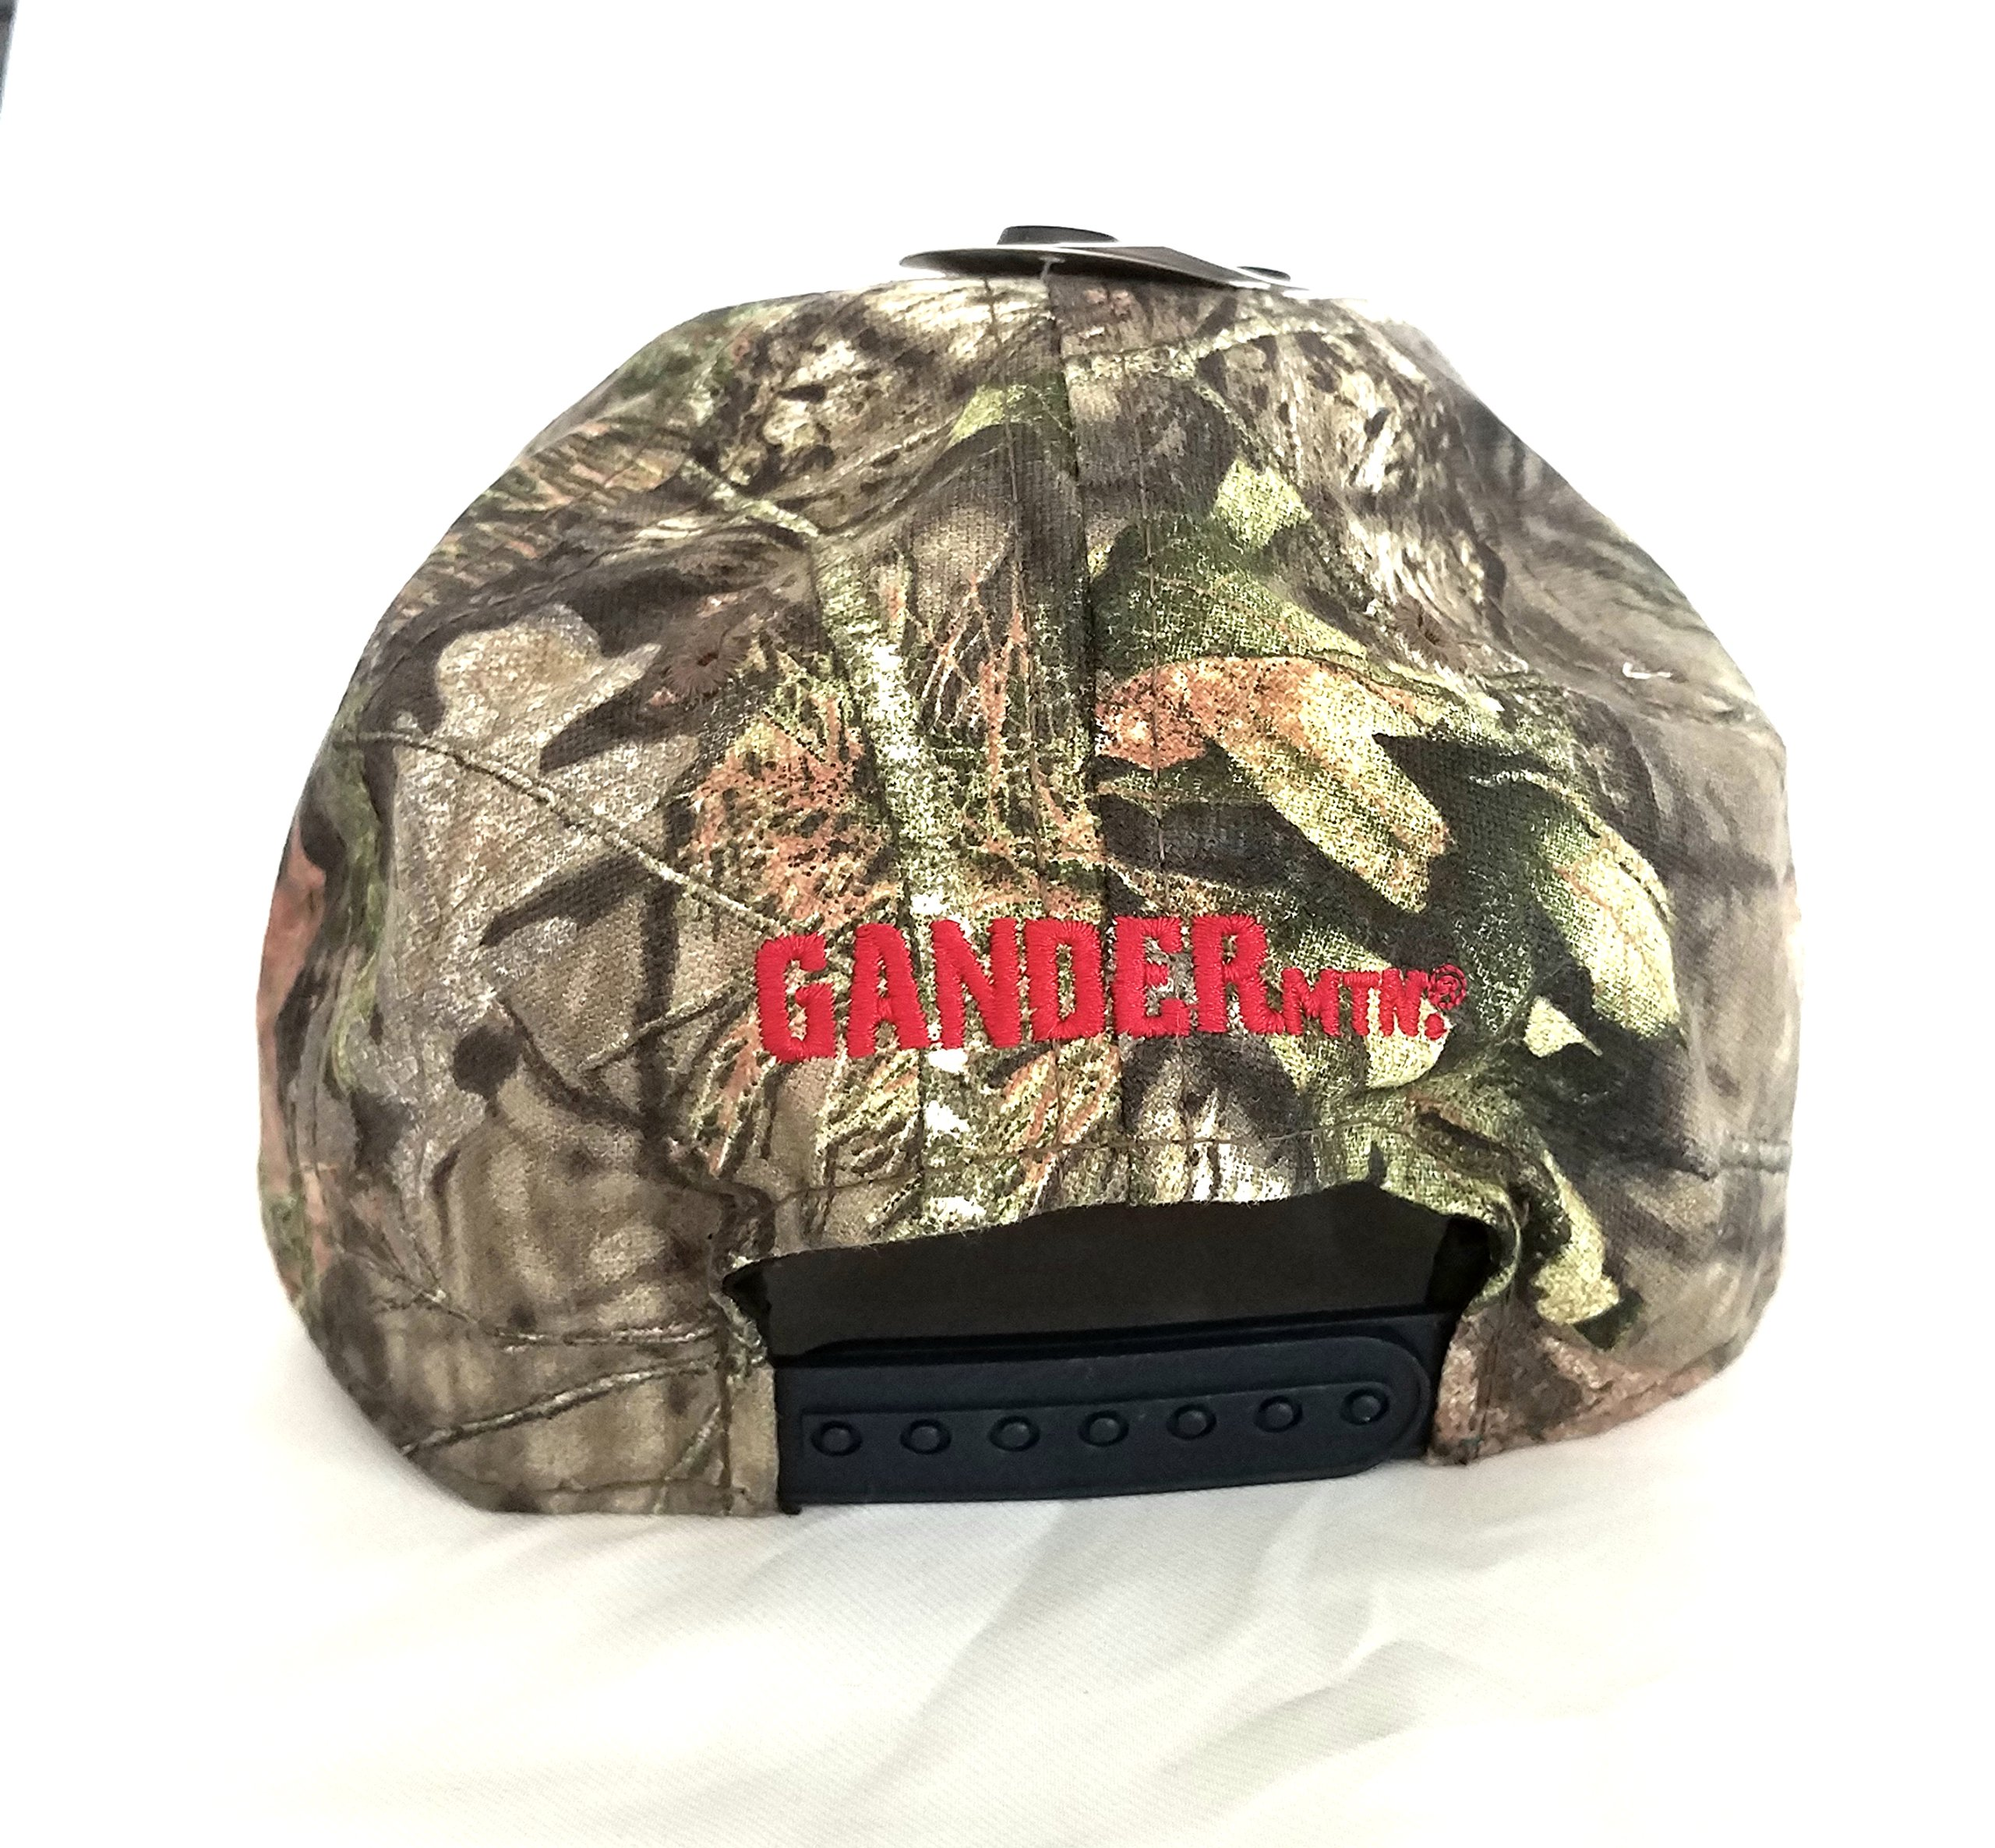 Mossy Oak Camping, Hunting, Outdoors American Flag Camo Cap, Army Military Camo Cap Baseball, Camouflage Hat by Mossy Oak (Image #3)